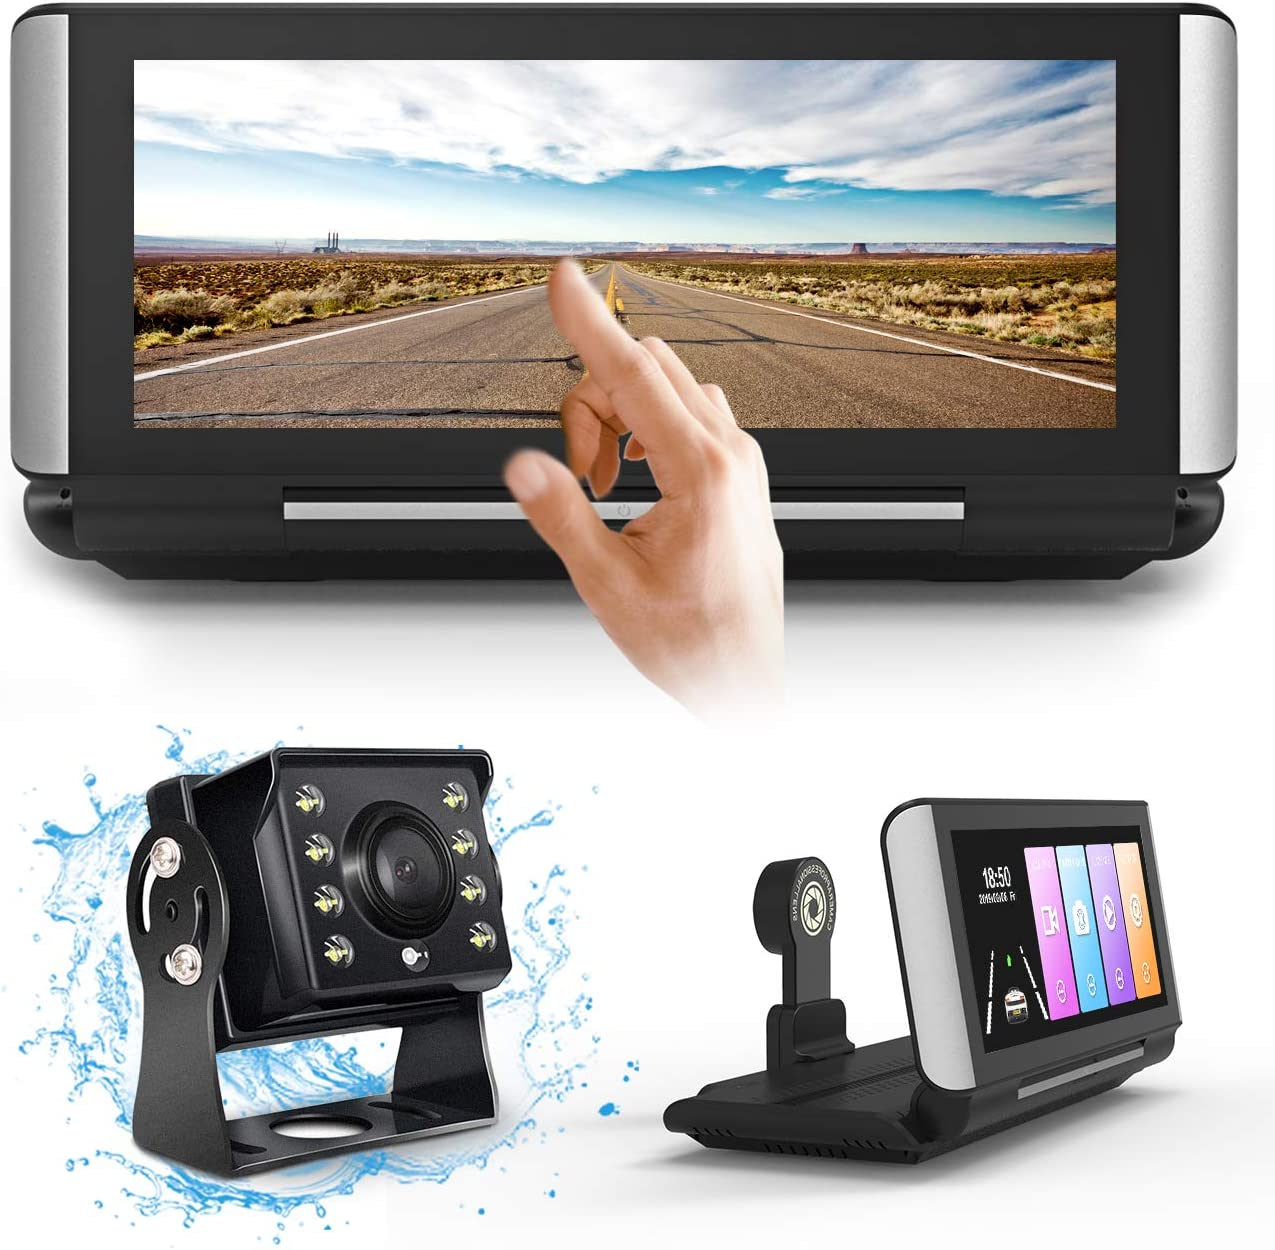 FHD Backup Camera Dual Dash Cam Streaming Media 3 in 1 for Truck RV Trailer Bus Vans Campers Motorhome,7 inch Center Stack Full Touch Screen Front and Rear View Parking Guideline